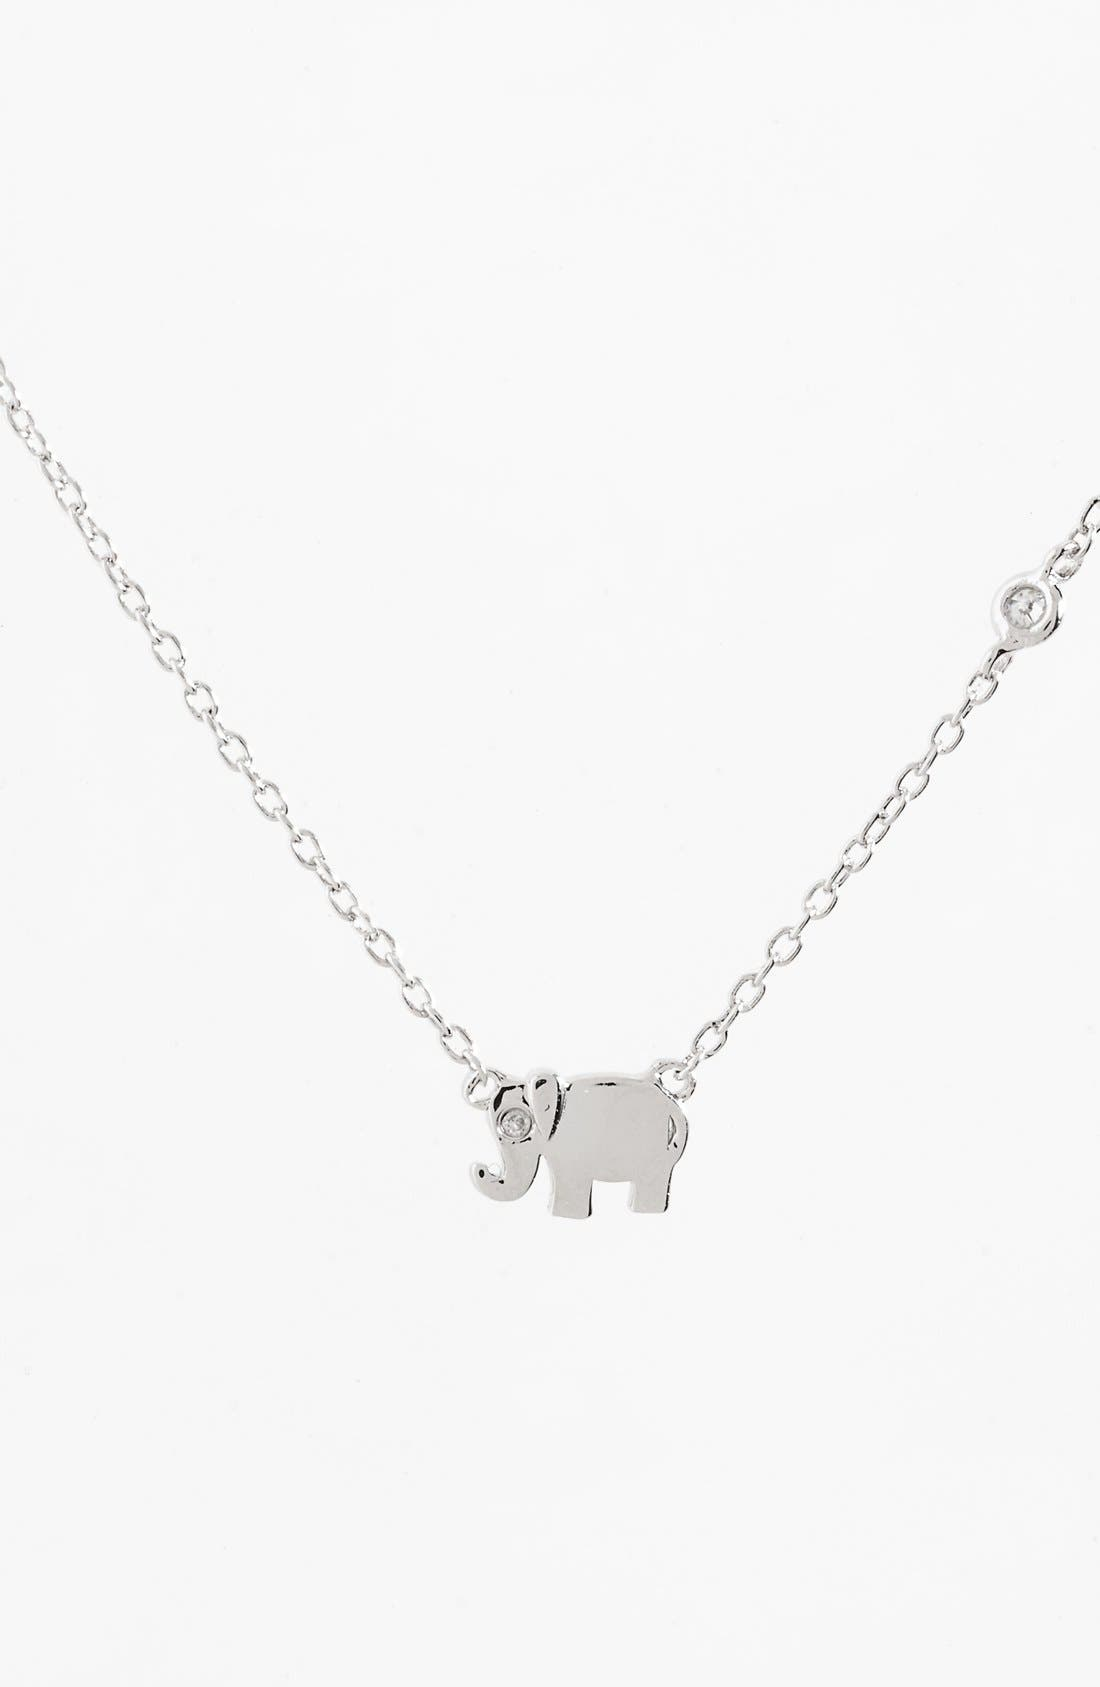 SHY by Sydney Evan Elephant Necklace,                             Main thumbnail 1, color,                             040